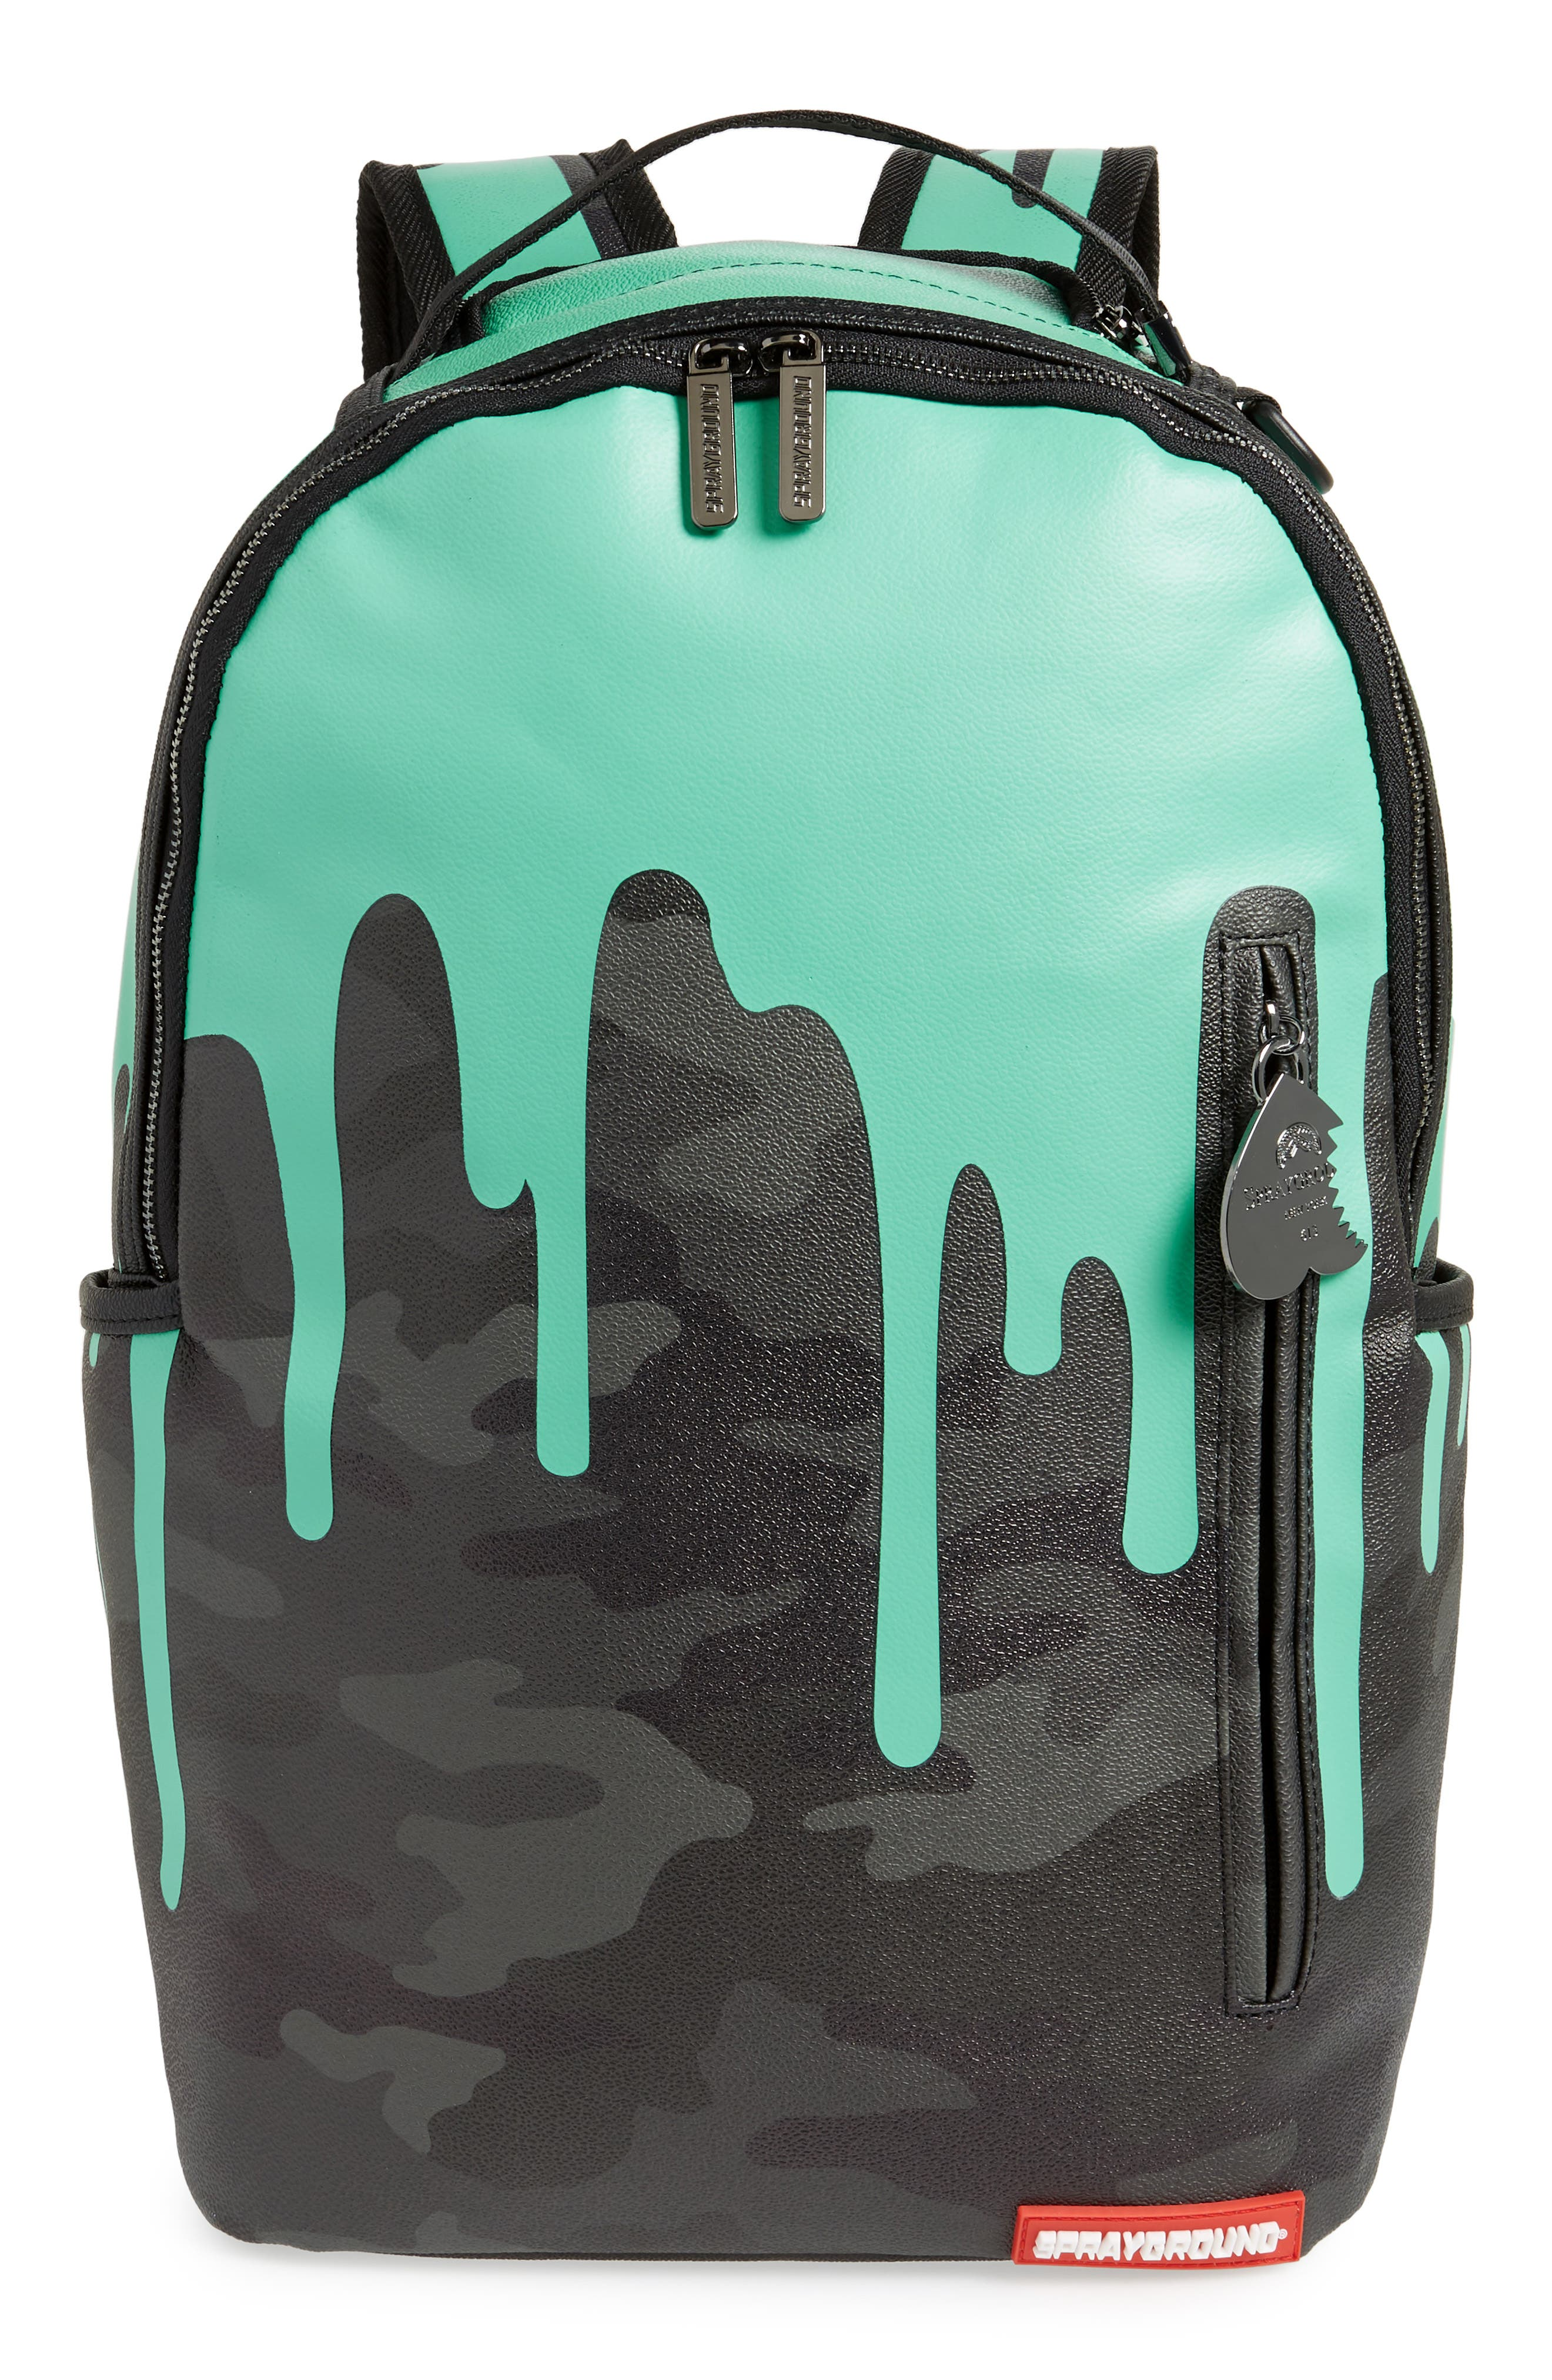 SPRAYGROUND Tiff Drips Print Backpack, Main, color, 020